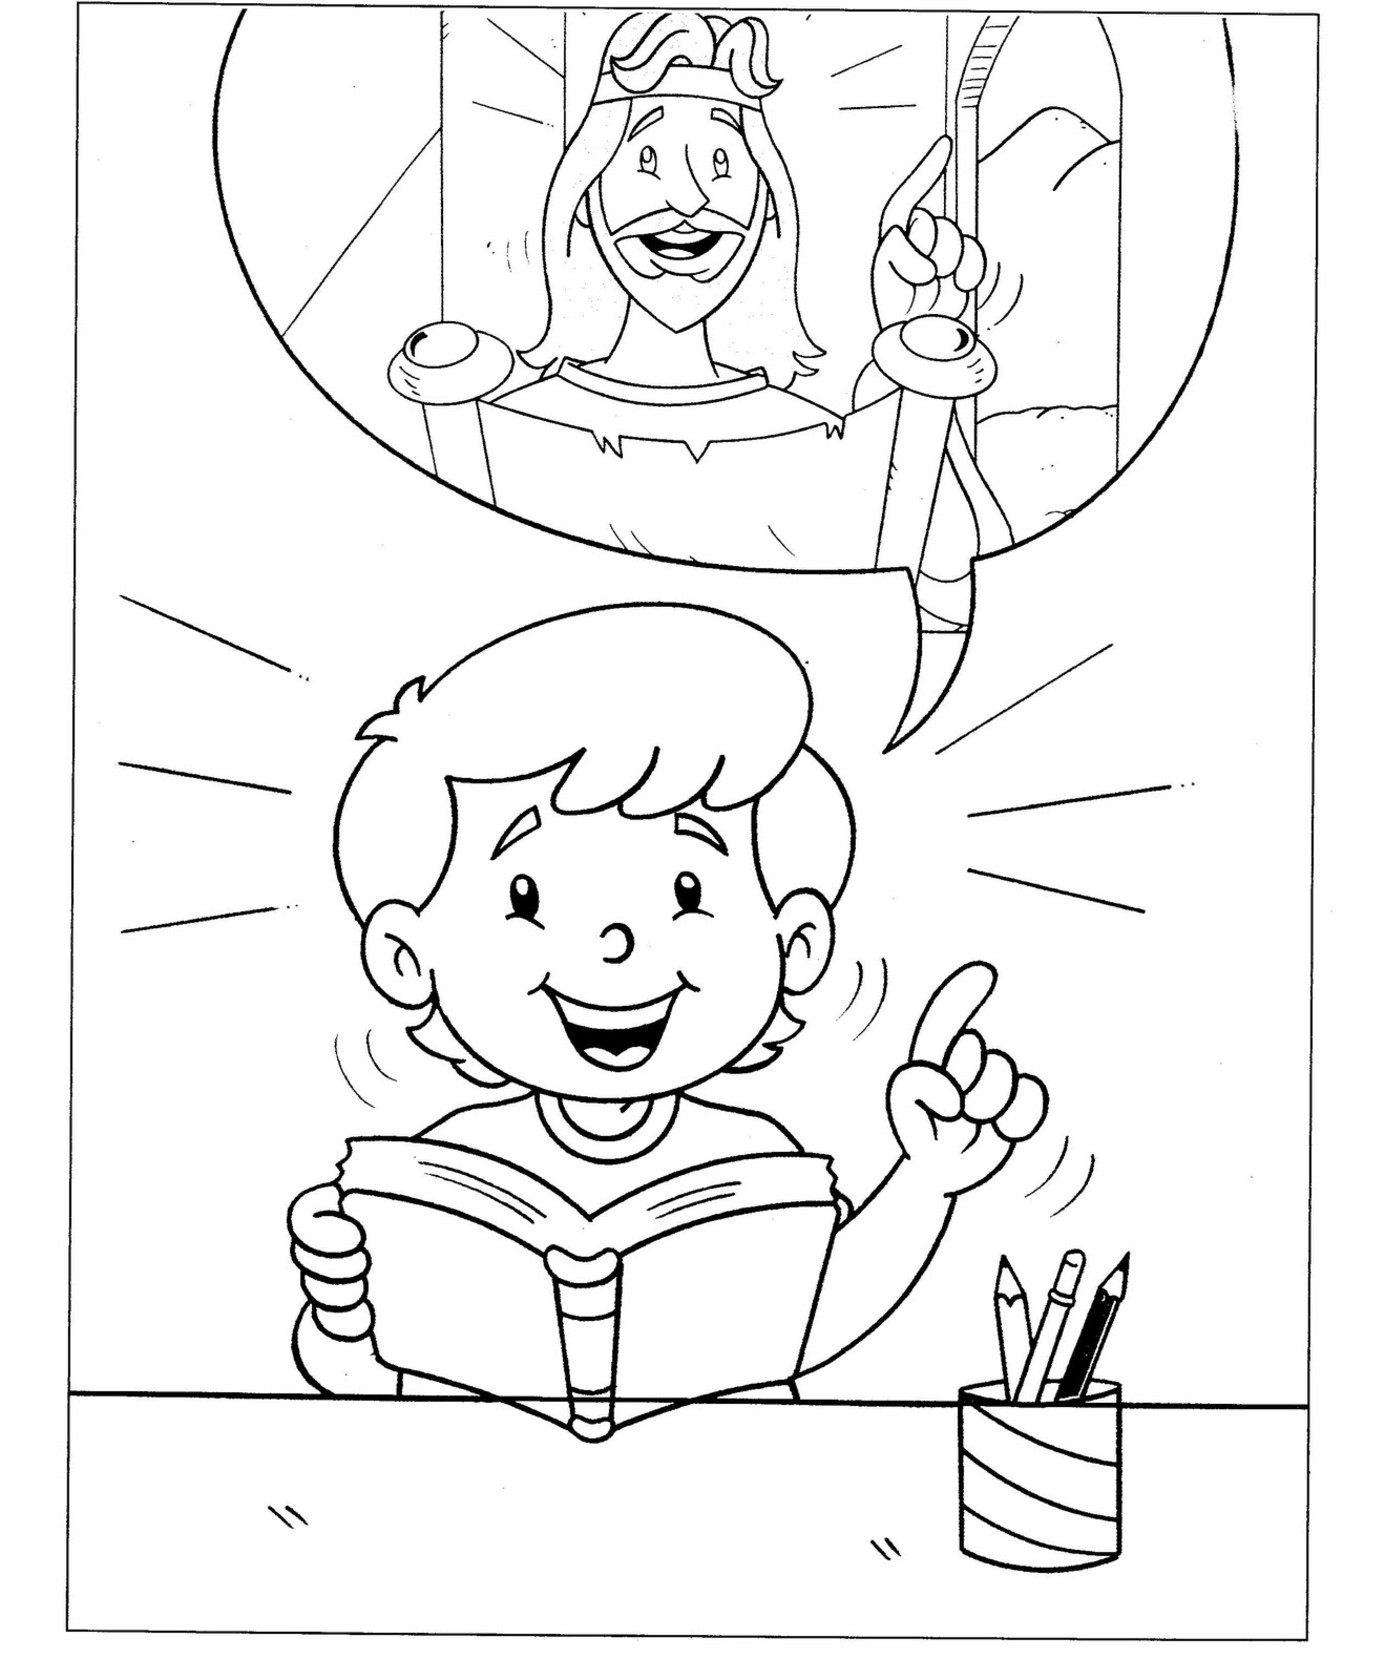 Christian coloring pages 3 | Coloring Pages To Print